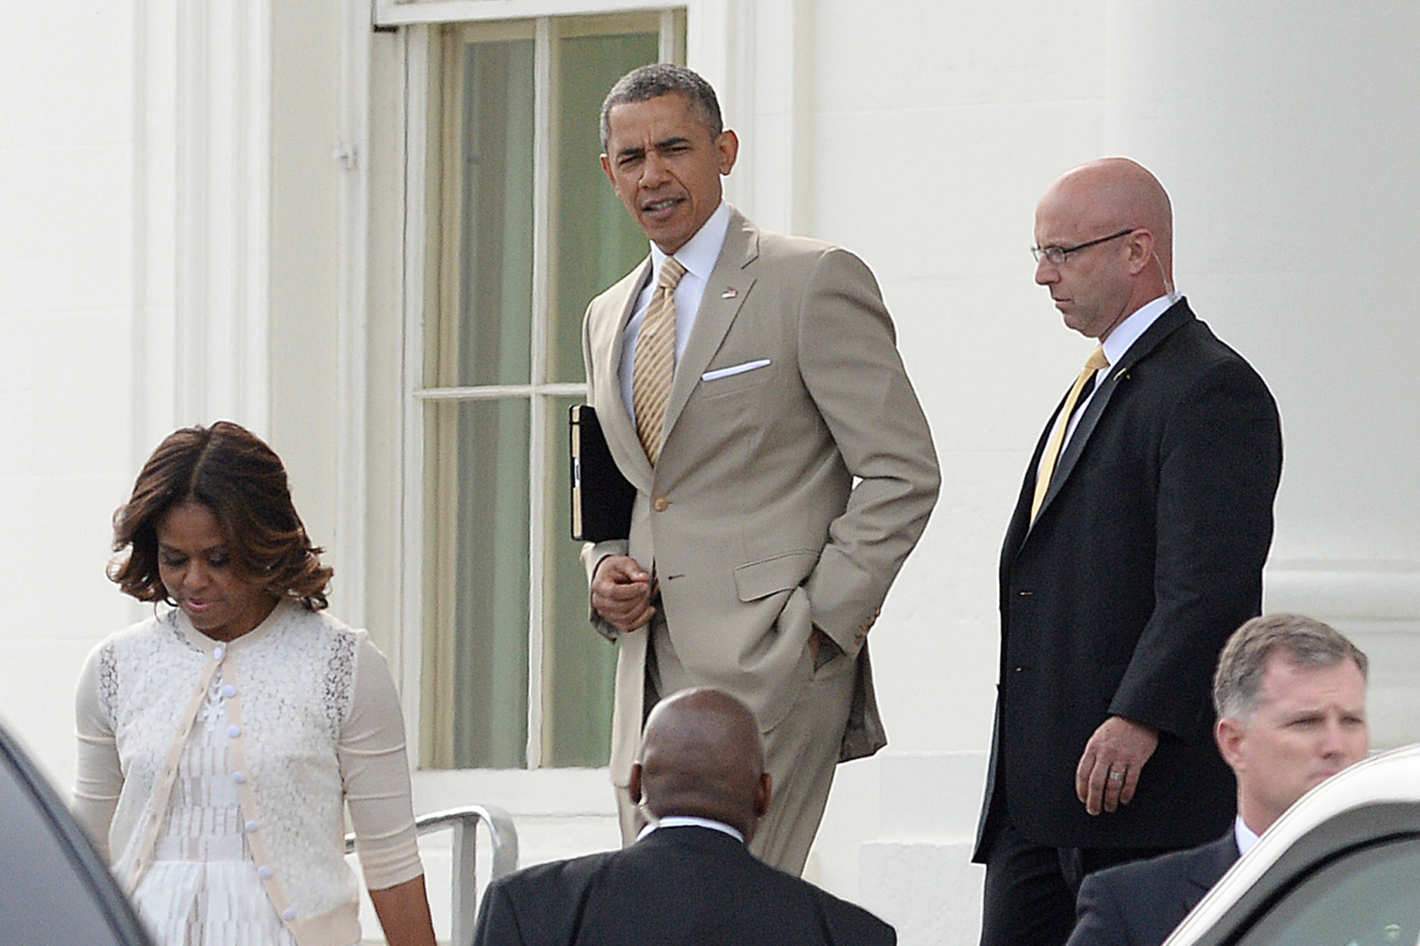 Barack Obama wearing his infamous tan suit. Image Courtesy:  New York Magazine